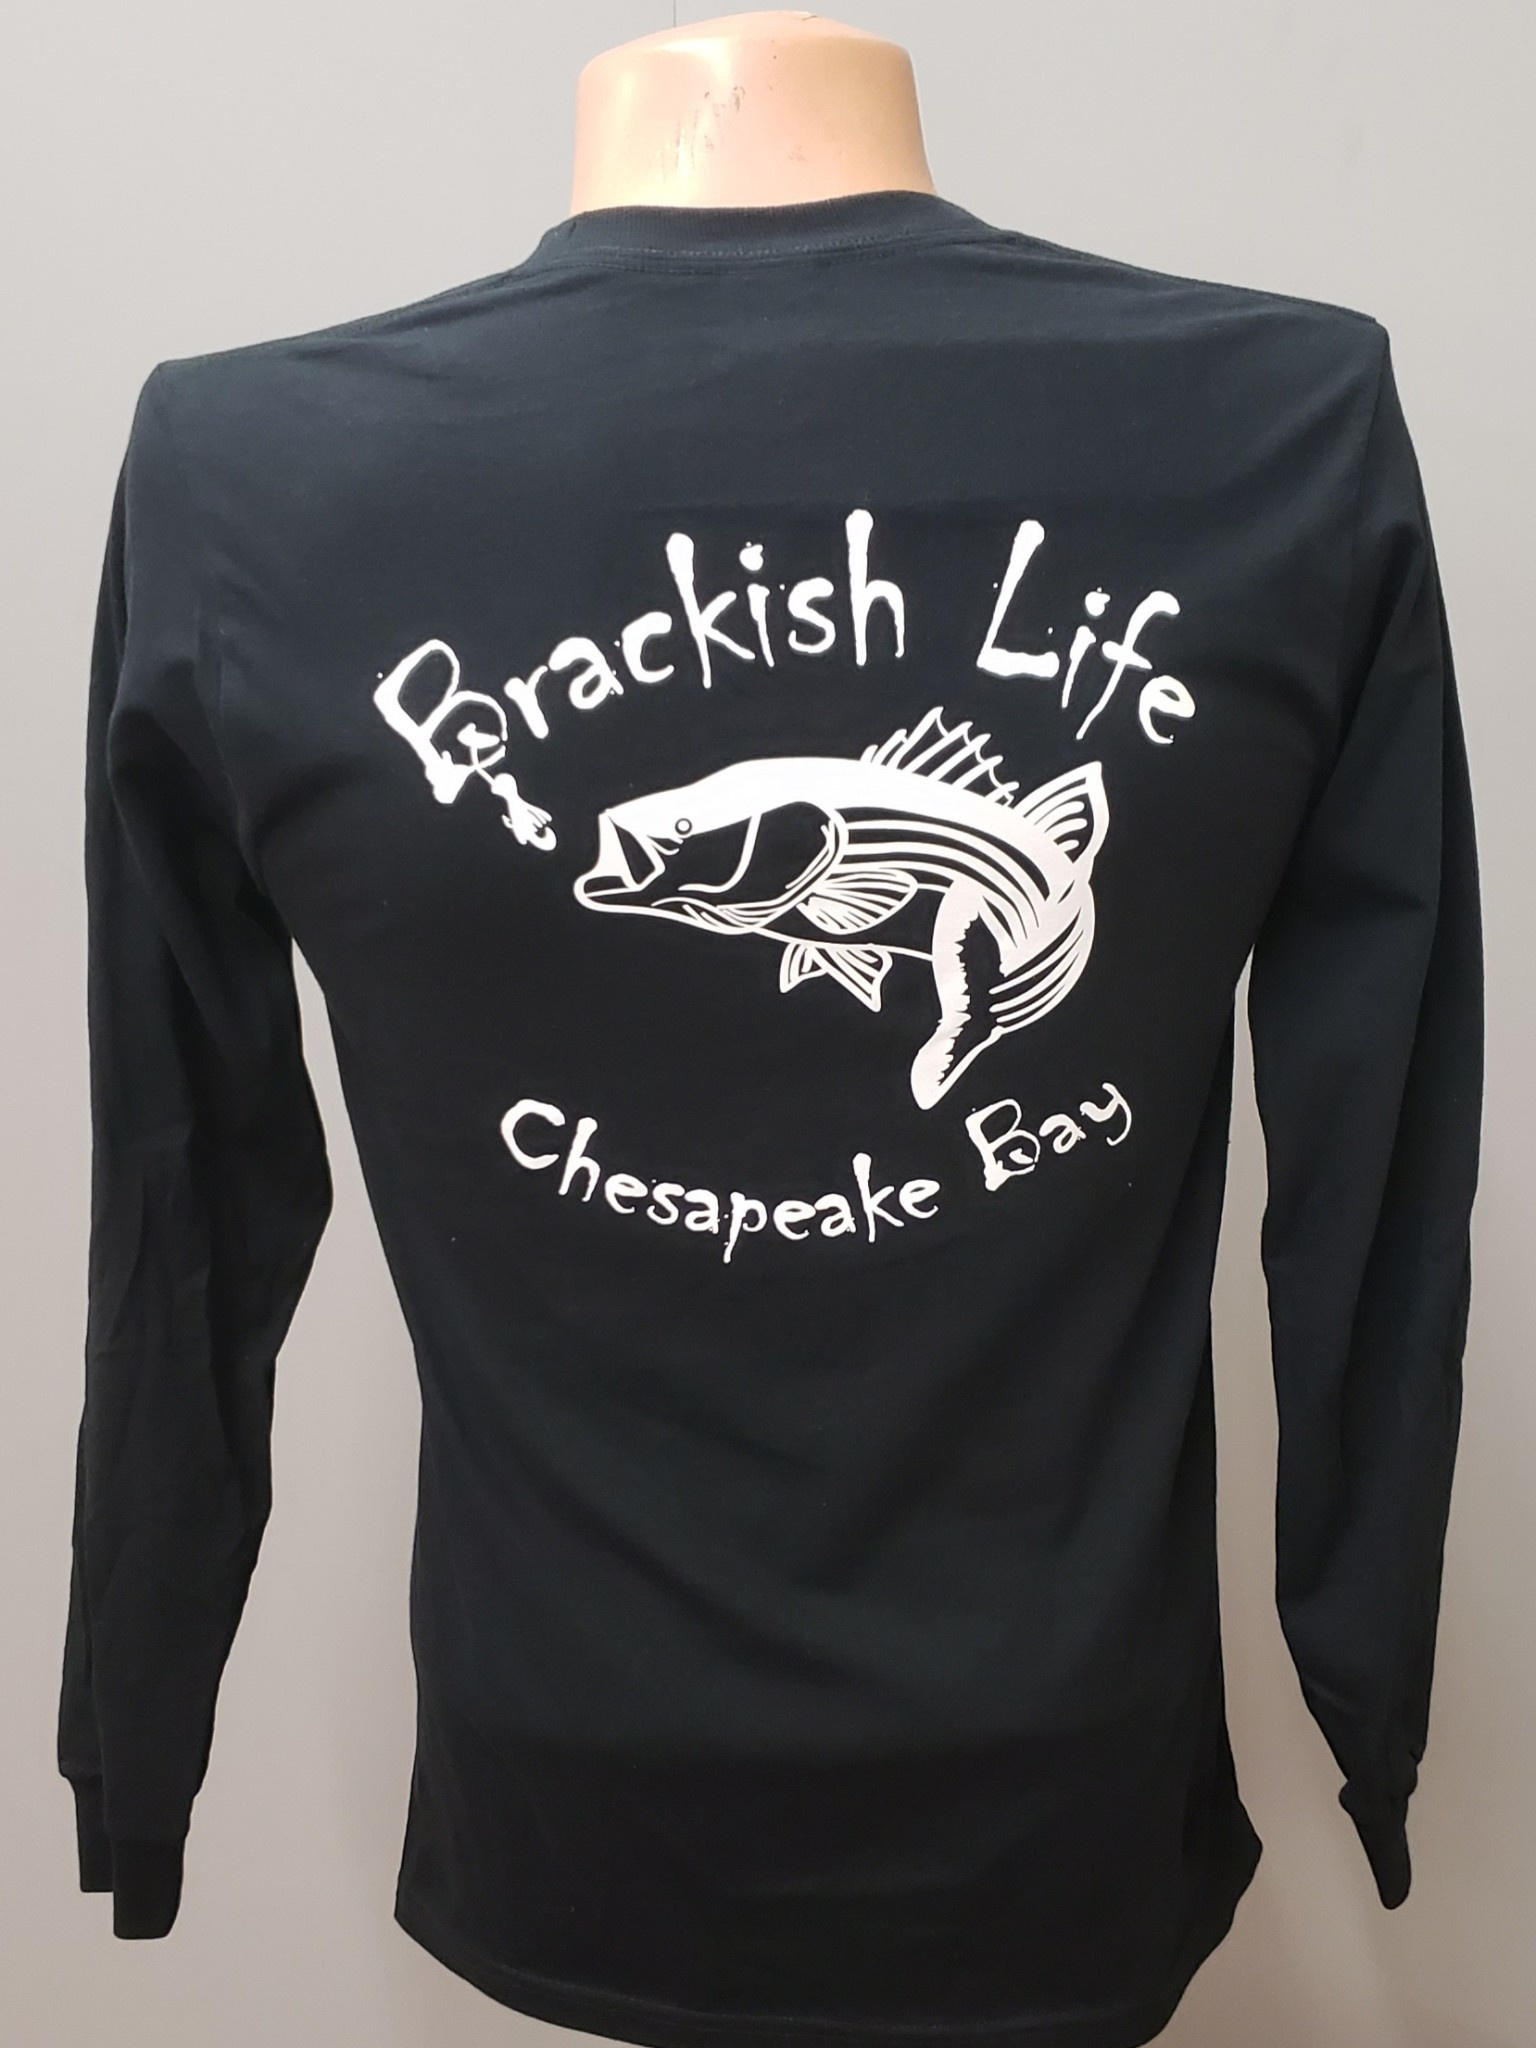 Brackish Life Black Super Soft L/S Tee, White Rockish